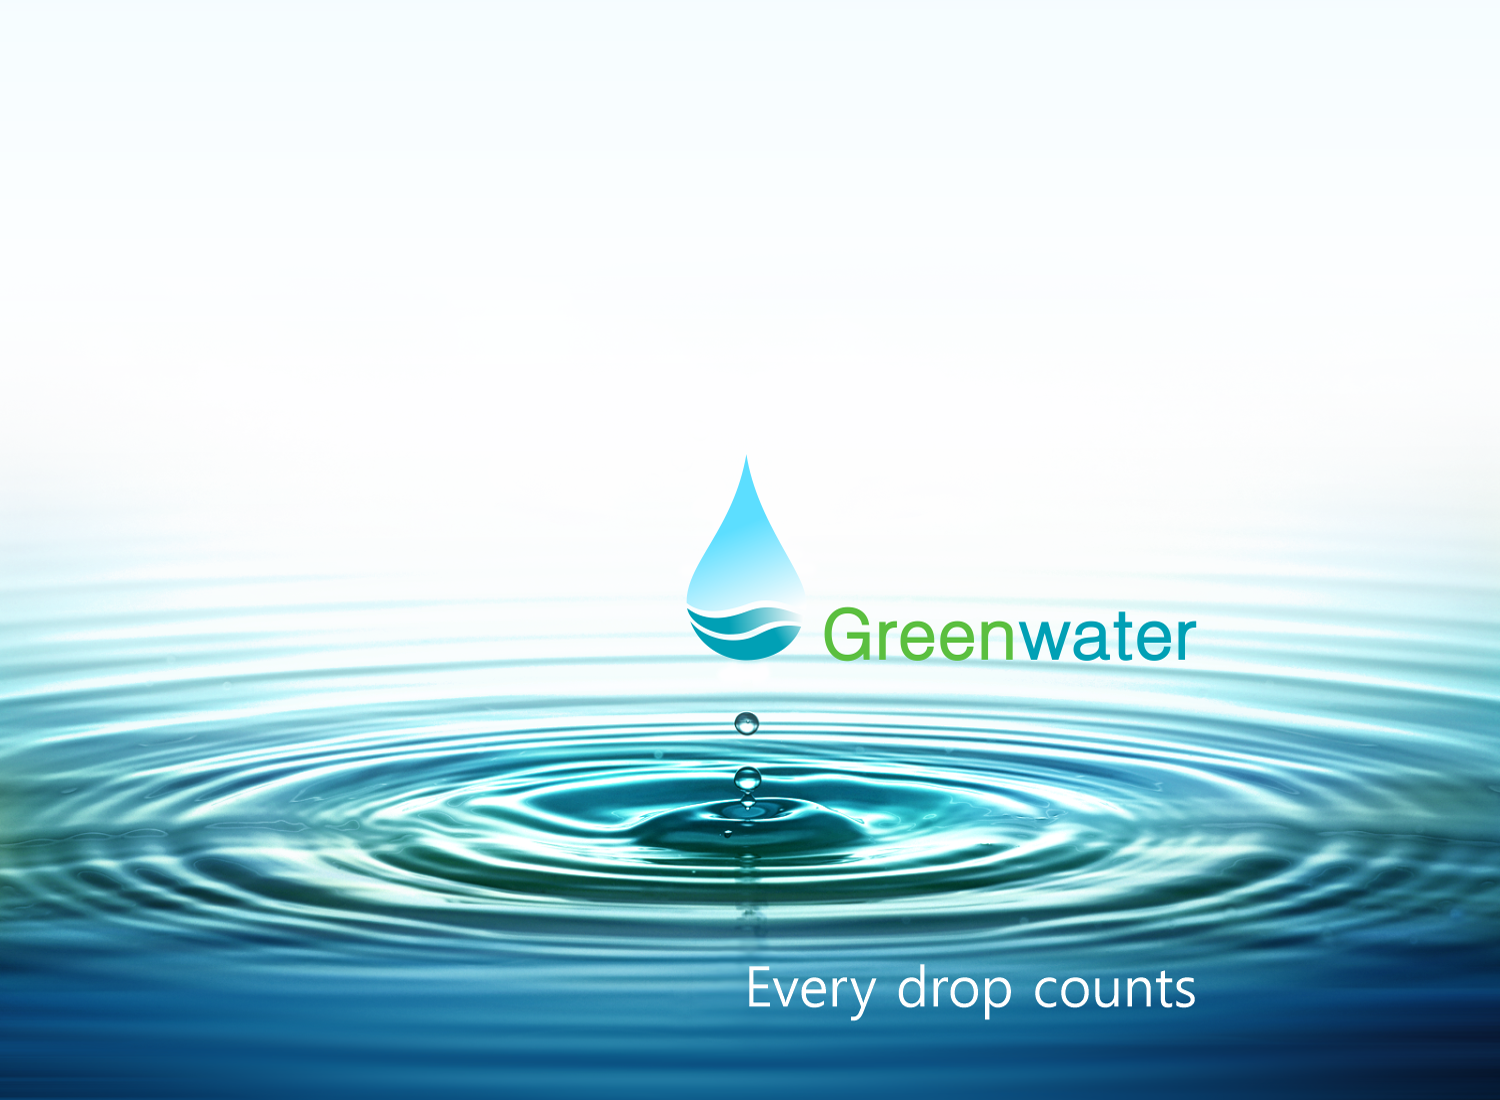 Image-Greenwater